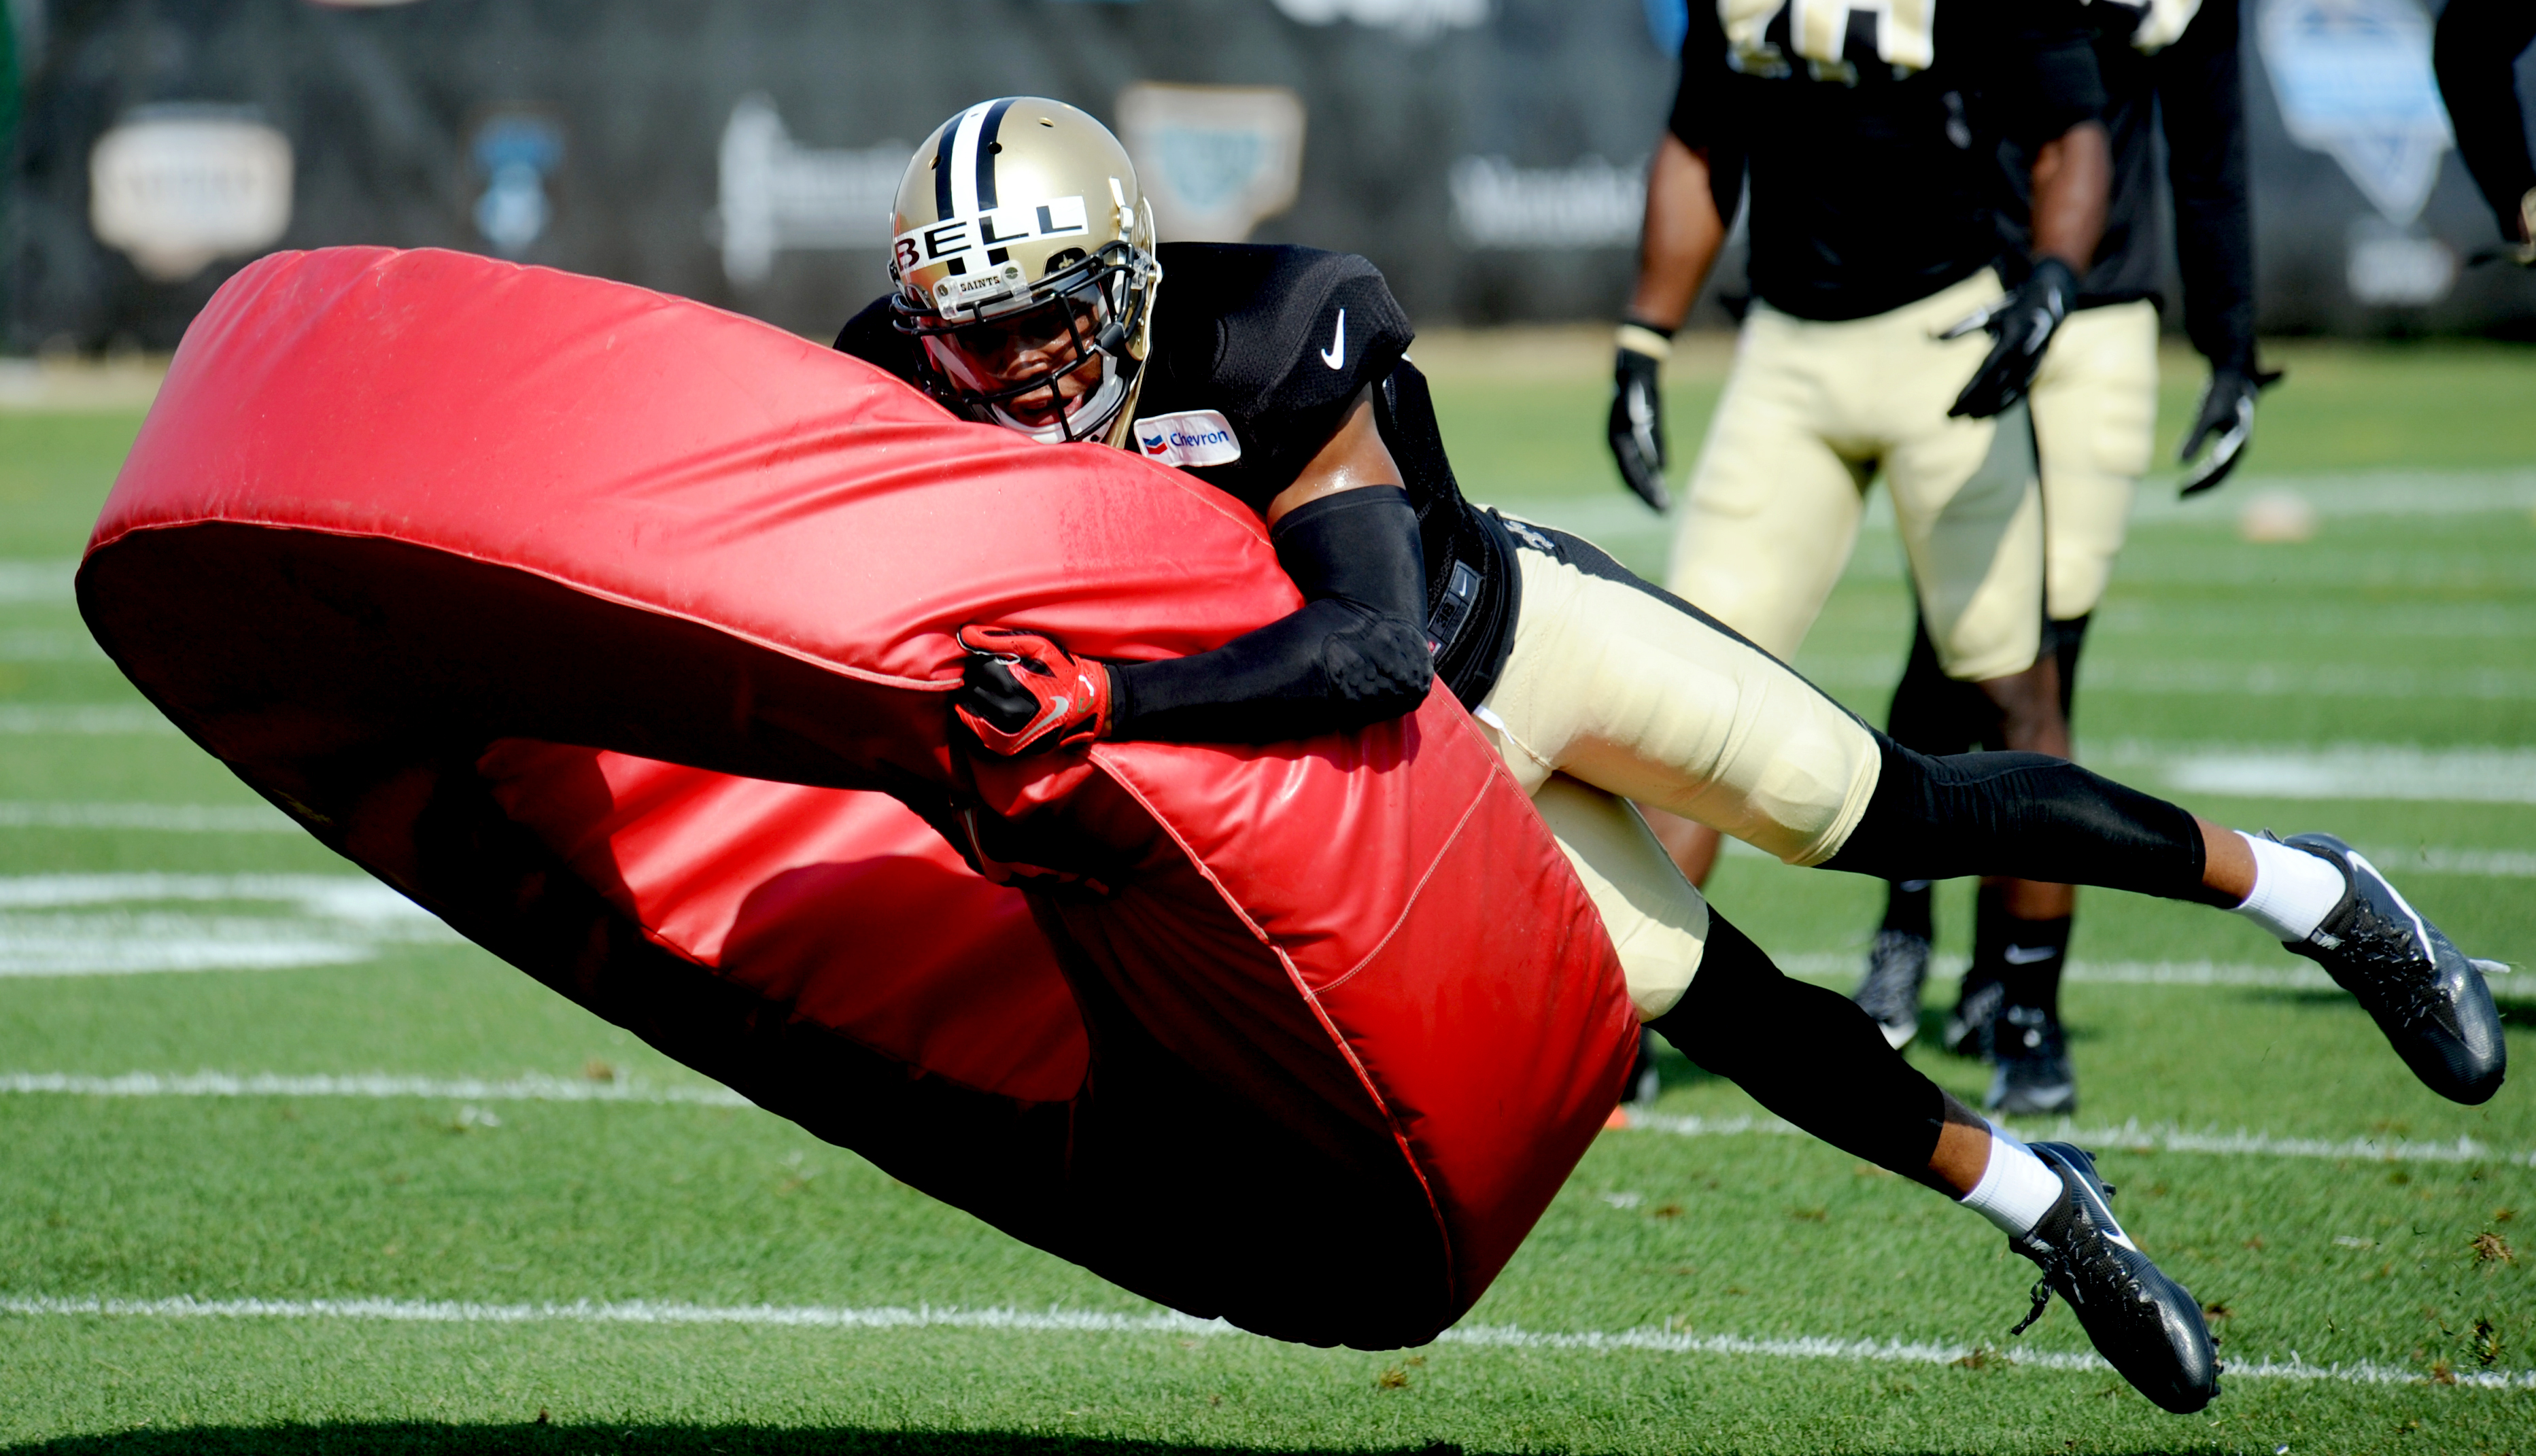 New Orleans Saints wide receiver Reggie Bell practices during the NFL football team's training camp in White Sulphur Springs, W.Va., Saturday, July 30, 2016. (AP Photo/Chris Tilley)